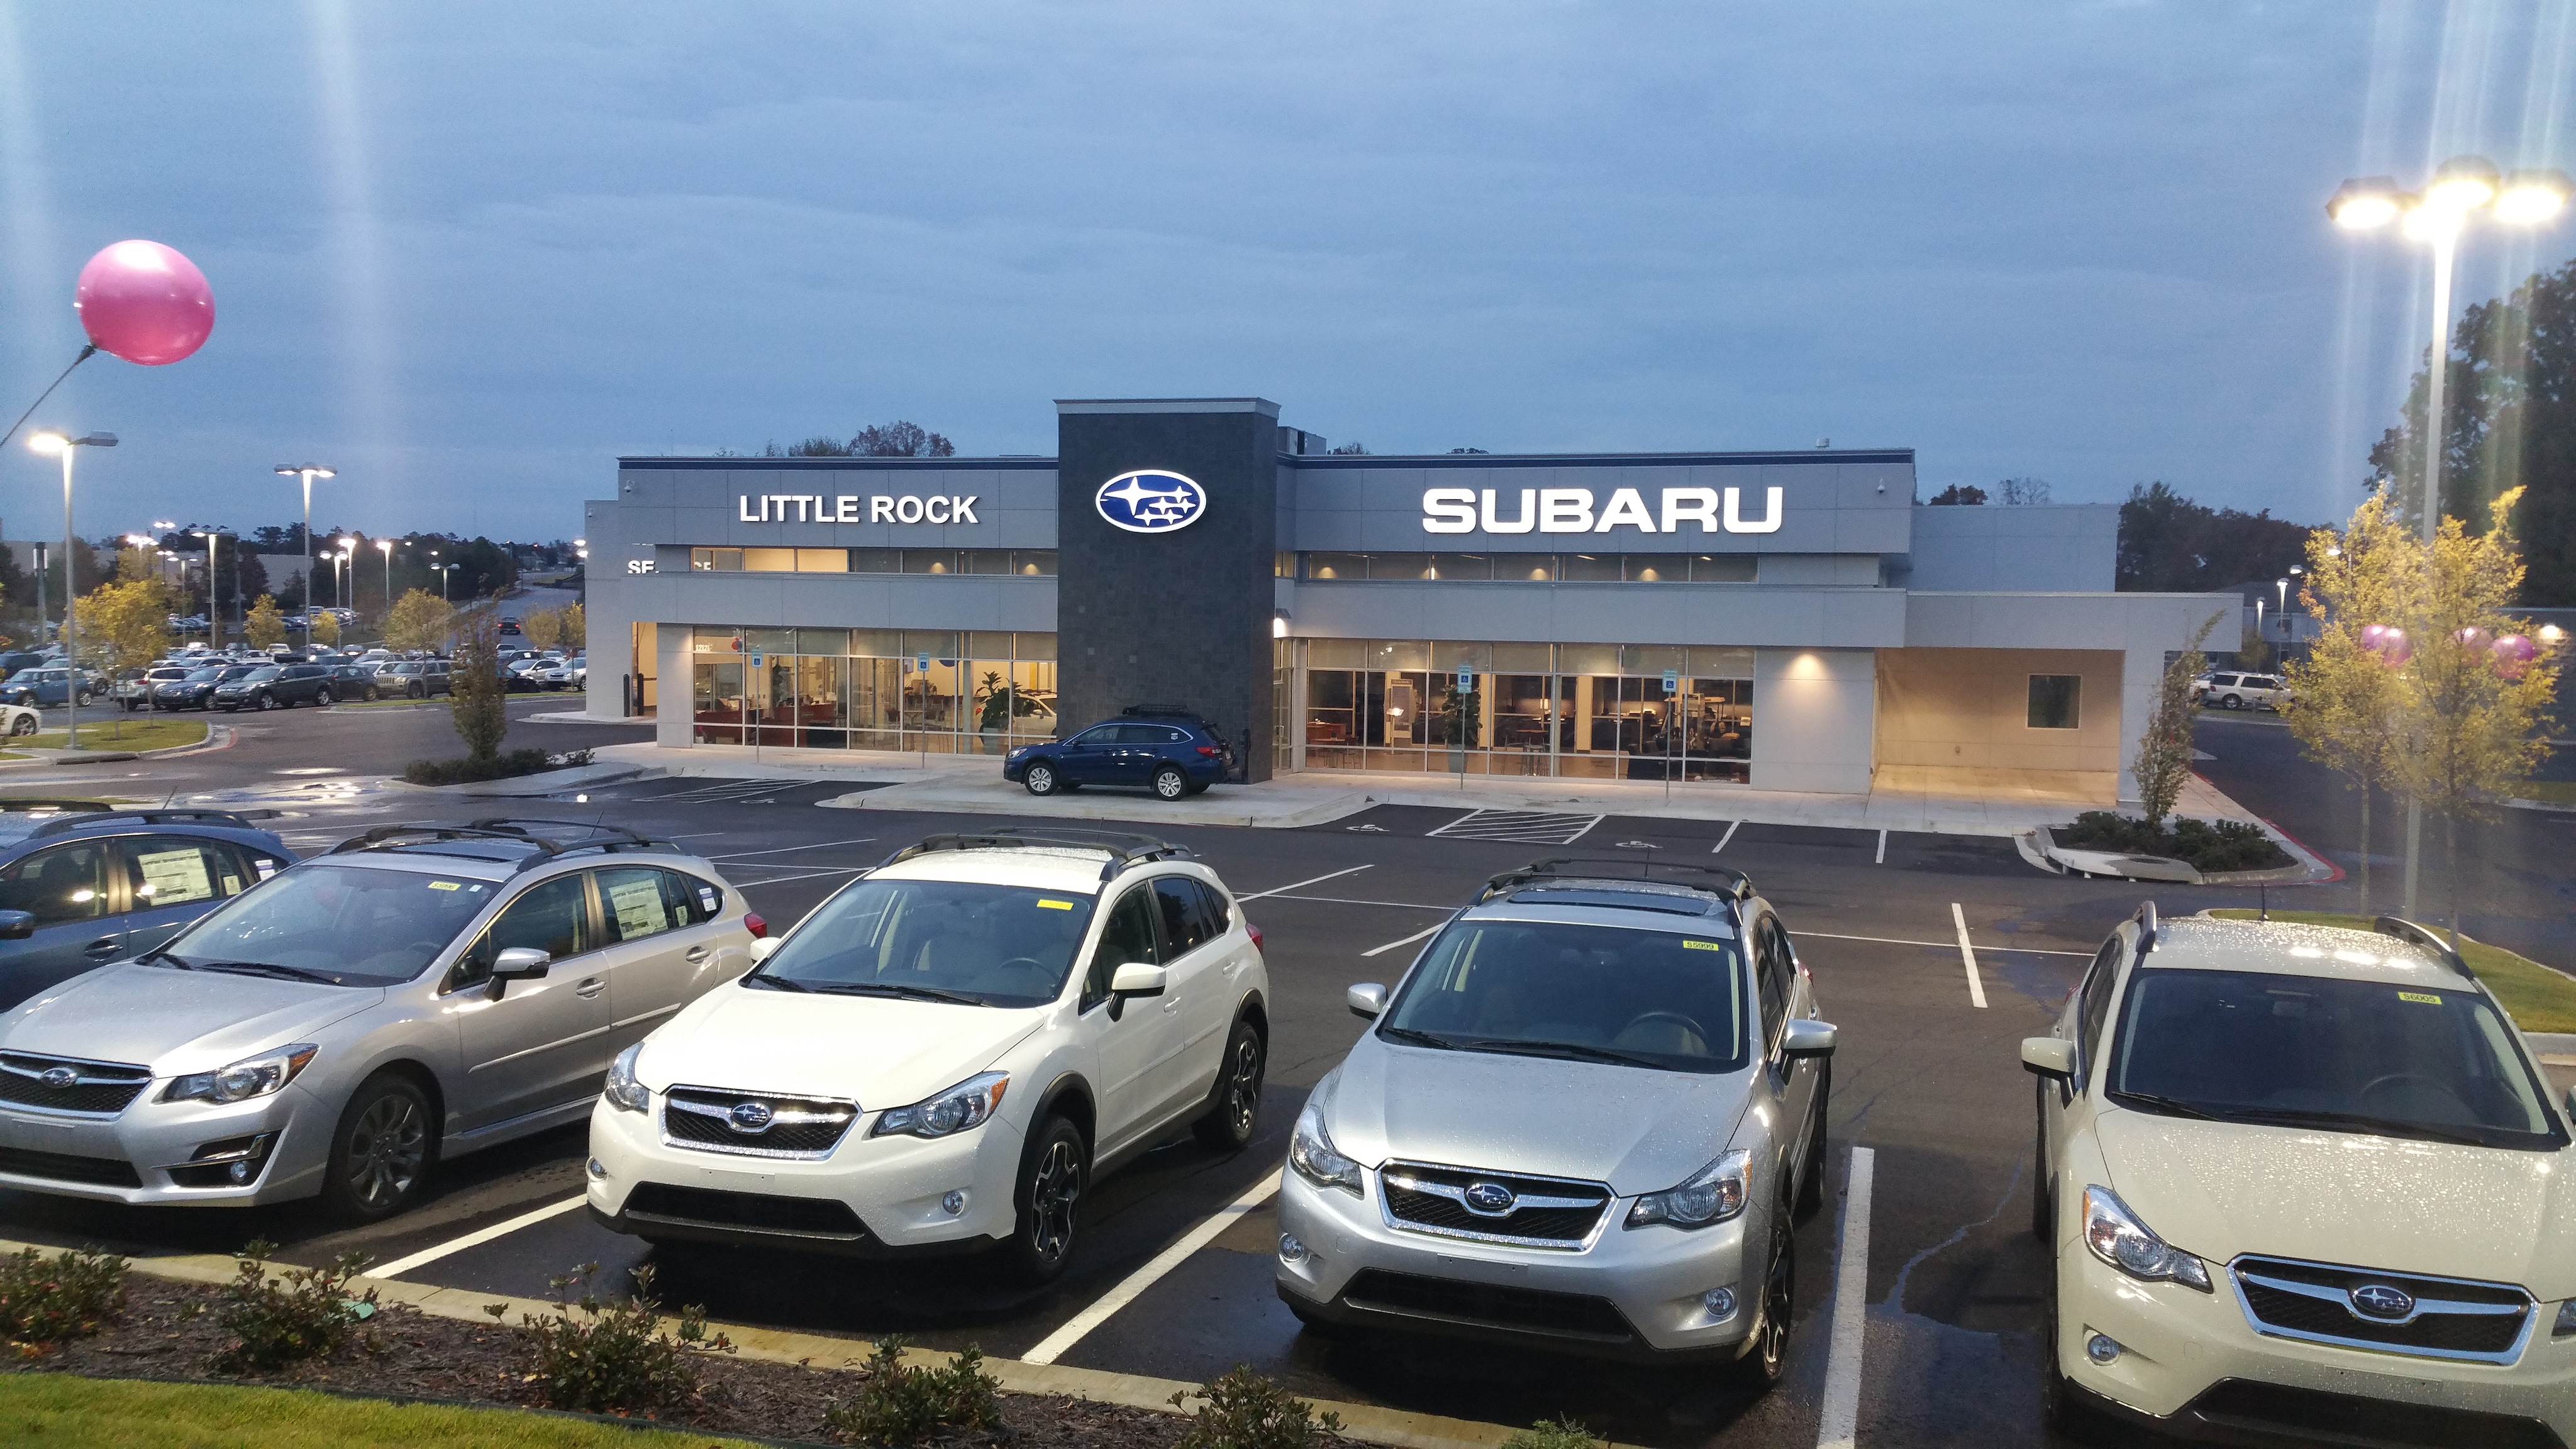 new used subaru dealership in little rock ar. Black Bedroom Furniture Sets. Home Design Ideas